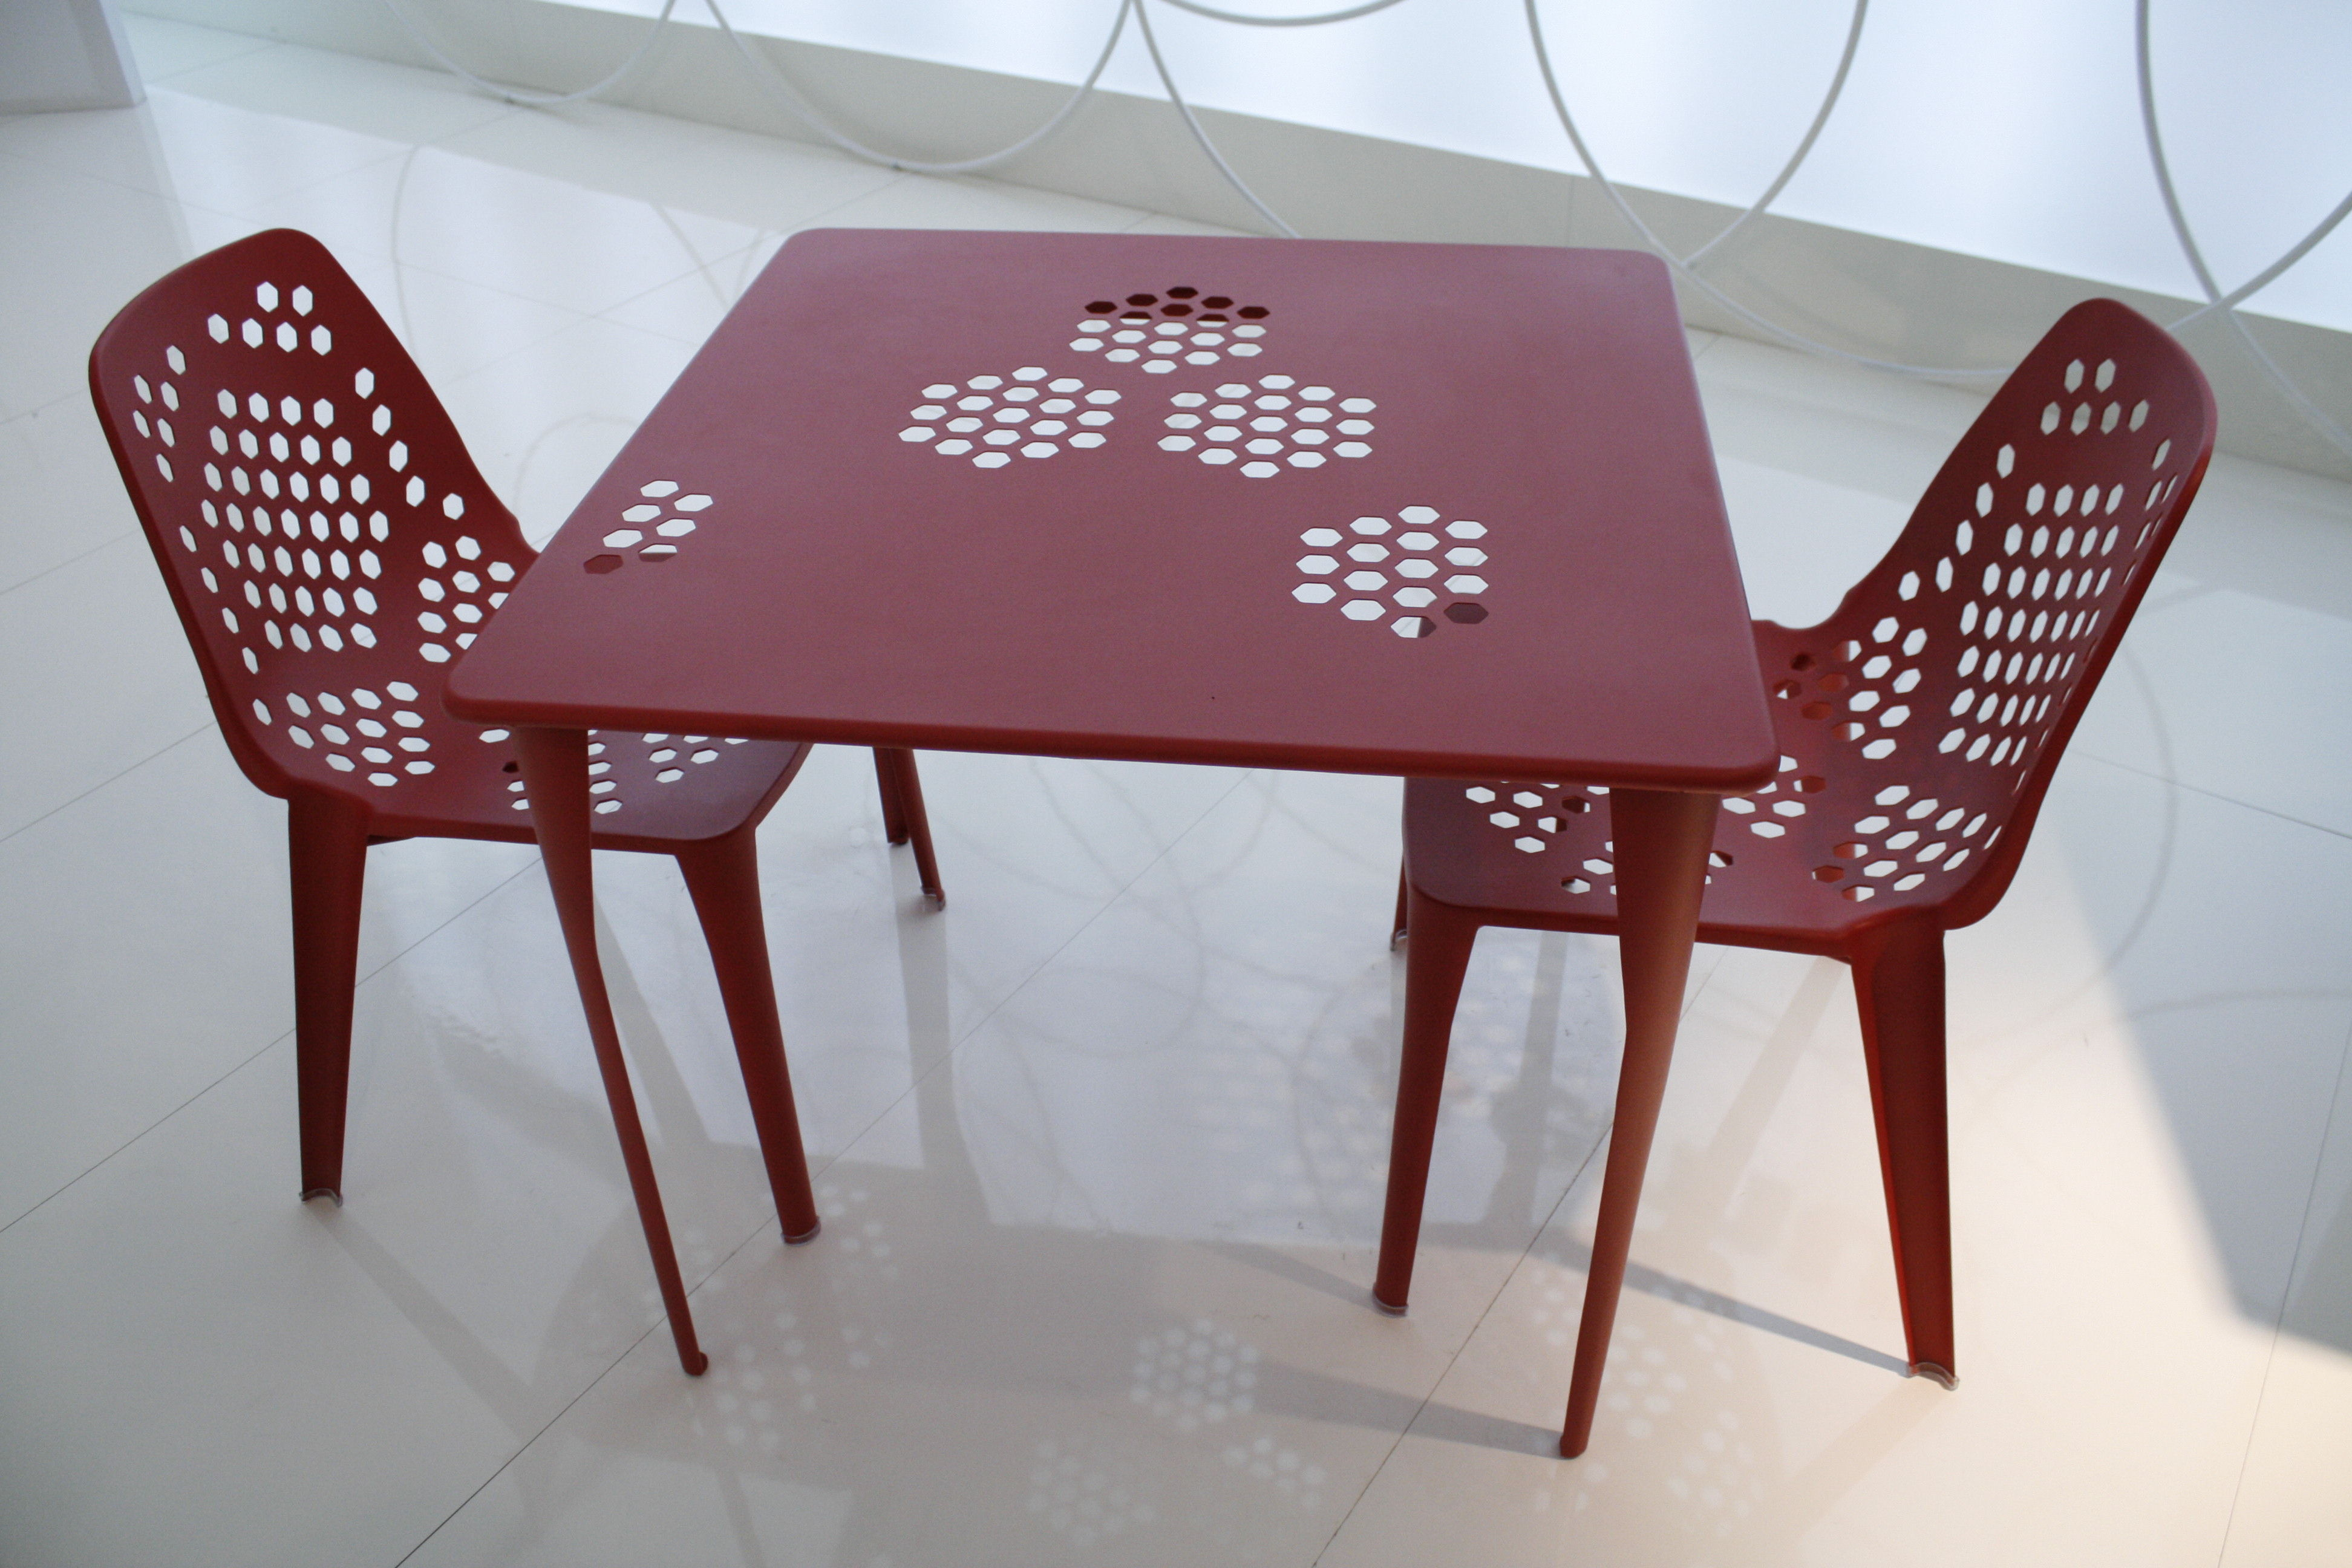 Emu Chairs Pattern Stacking Chair Metal Red By Emu Made In Design Uk